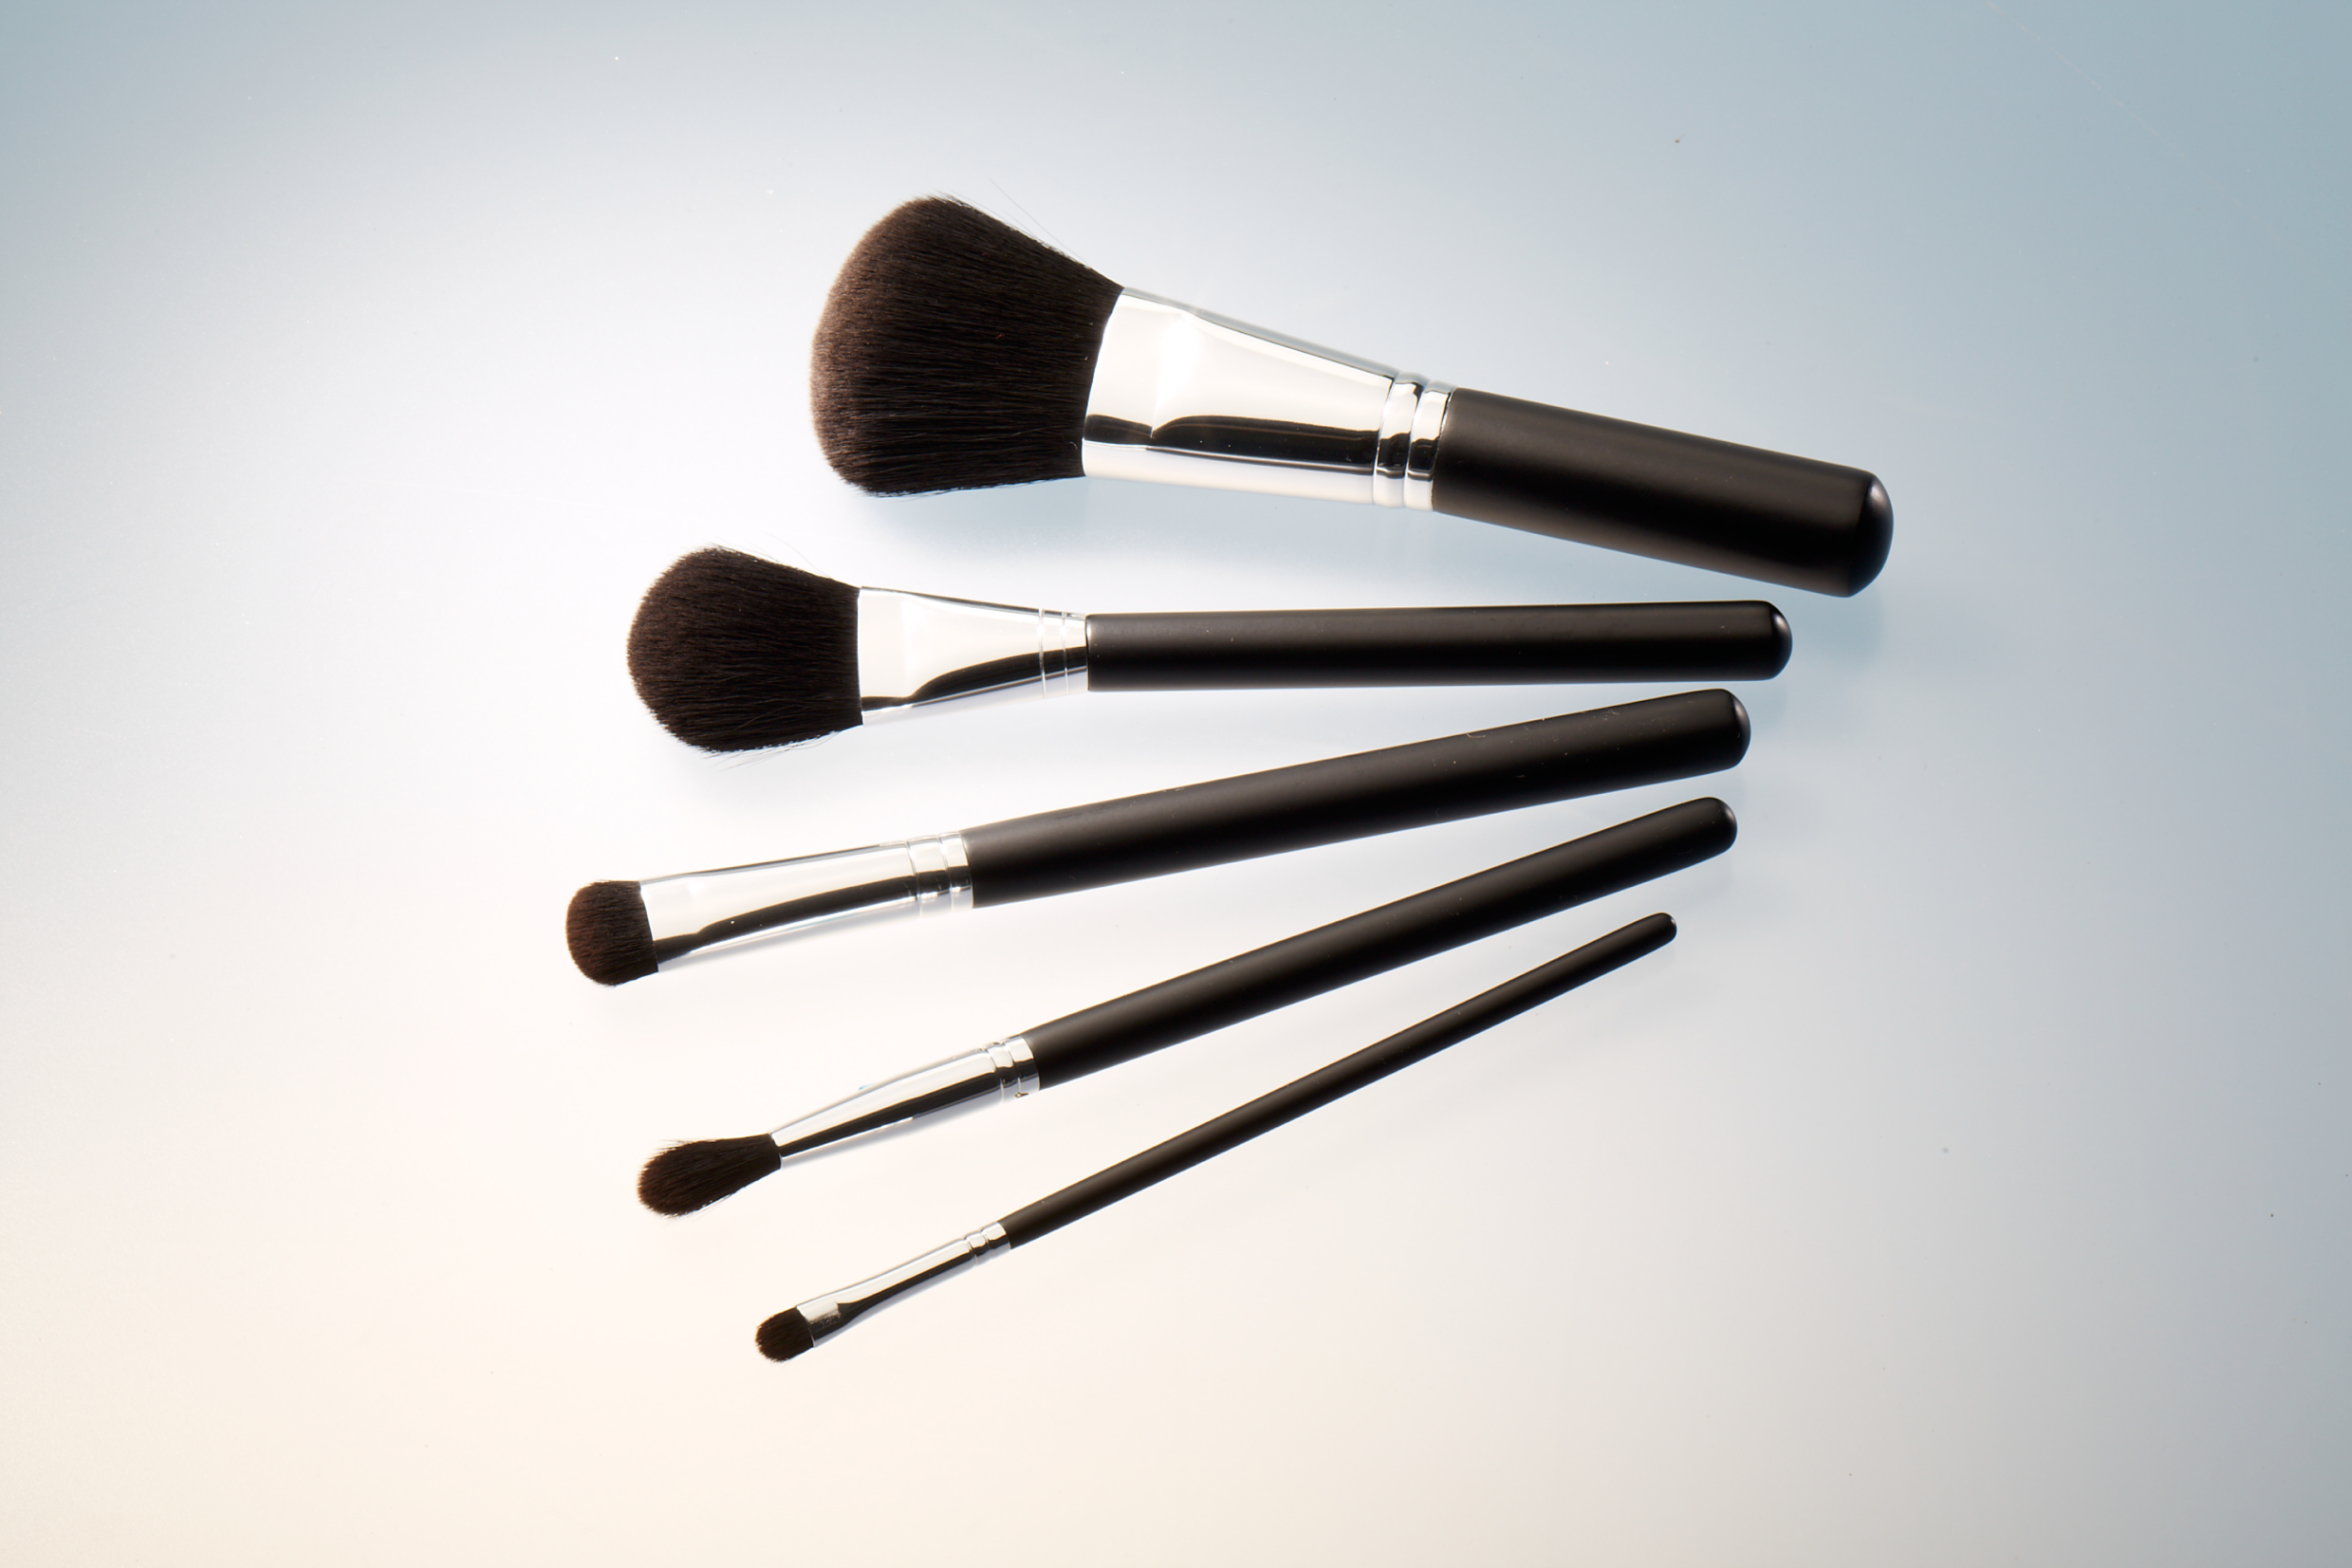 Synthetic Makeup Brushes Today Not All Created Equal